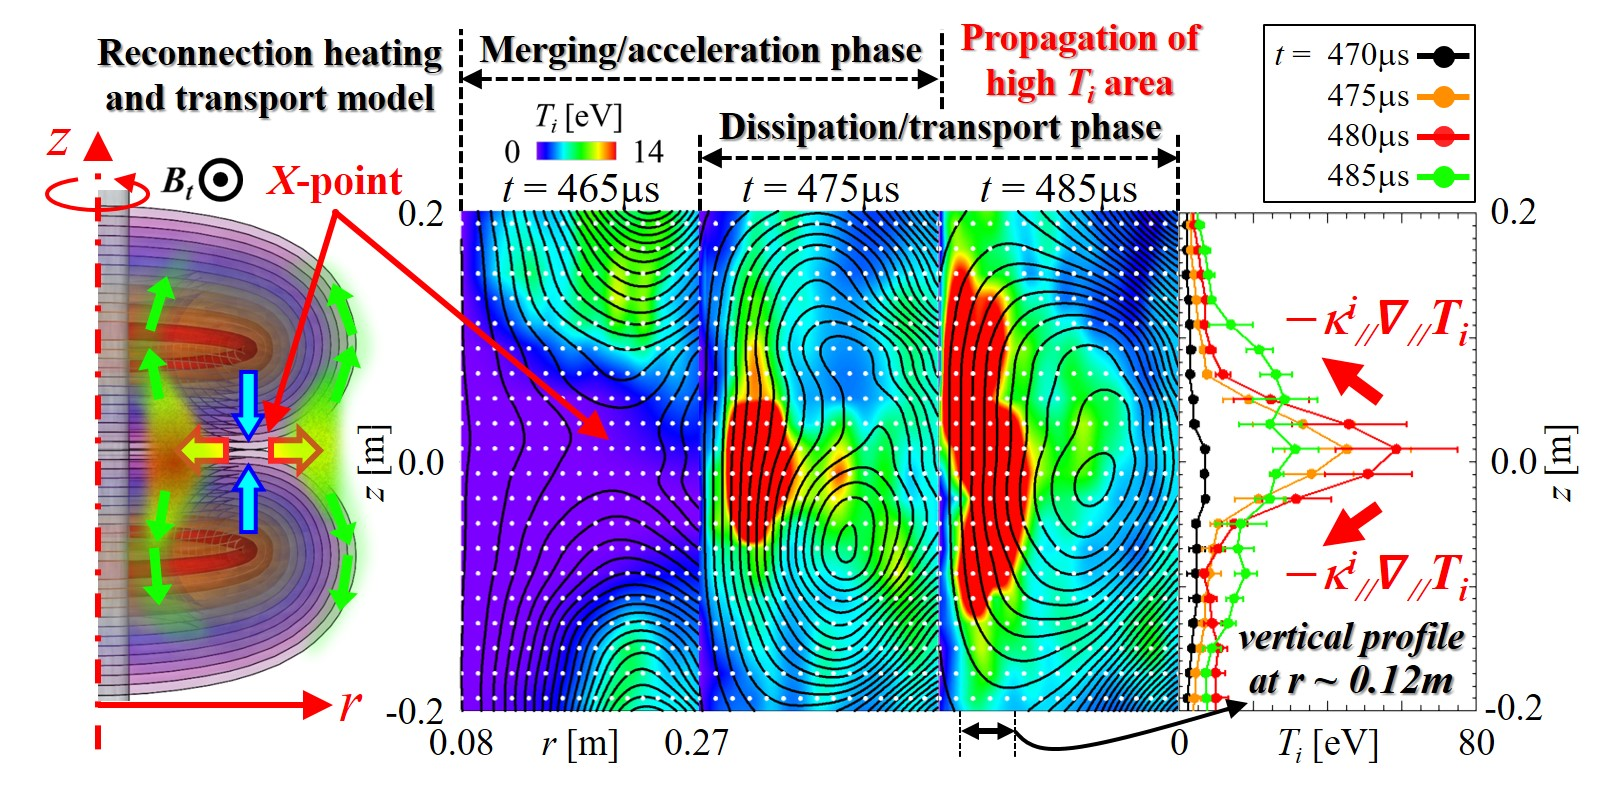 Time evolution of full-2D ($r-z$) $T_i$ profile during reconnection heating/transport process in TS-6. As in the model (left), high $T_i$ area is initially formed in the downstream region around midplane ($z\sim 0$m) and then propagates vertically on closed flux surface (vertical 1D profile of $T_i$ at $r \sim 0.12$m is also shown).